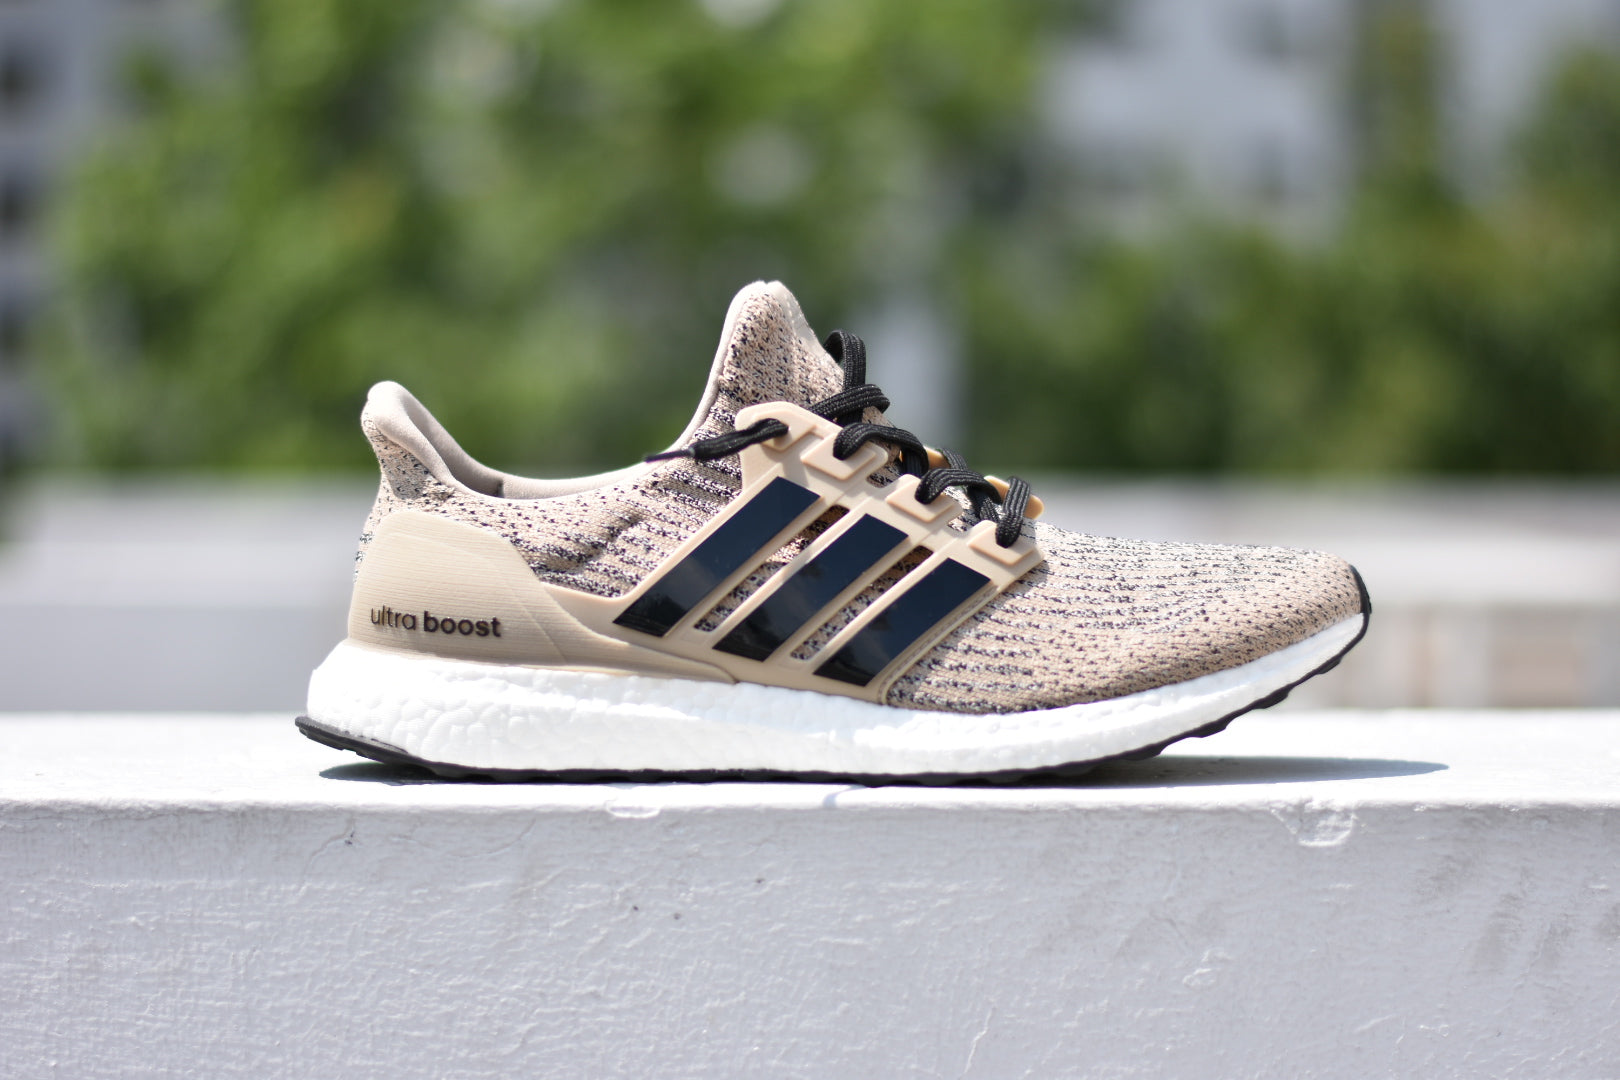 Transform your Ultra Boost 3.0 Trace Khaki into a Limited Edition colorway